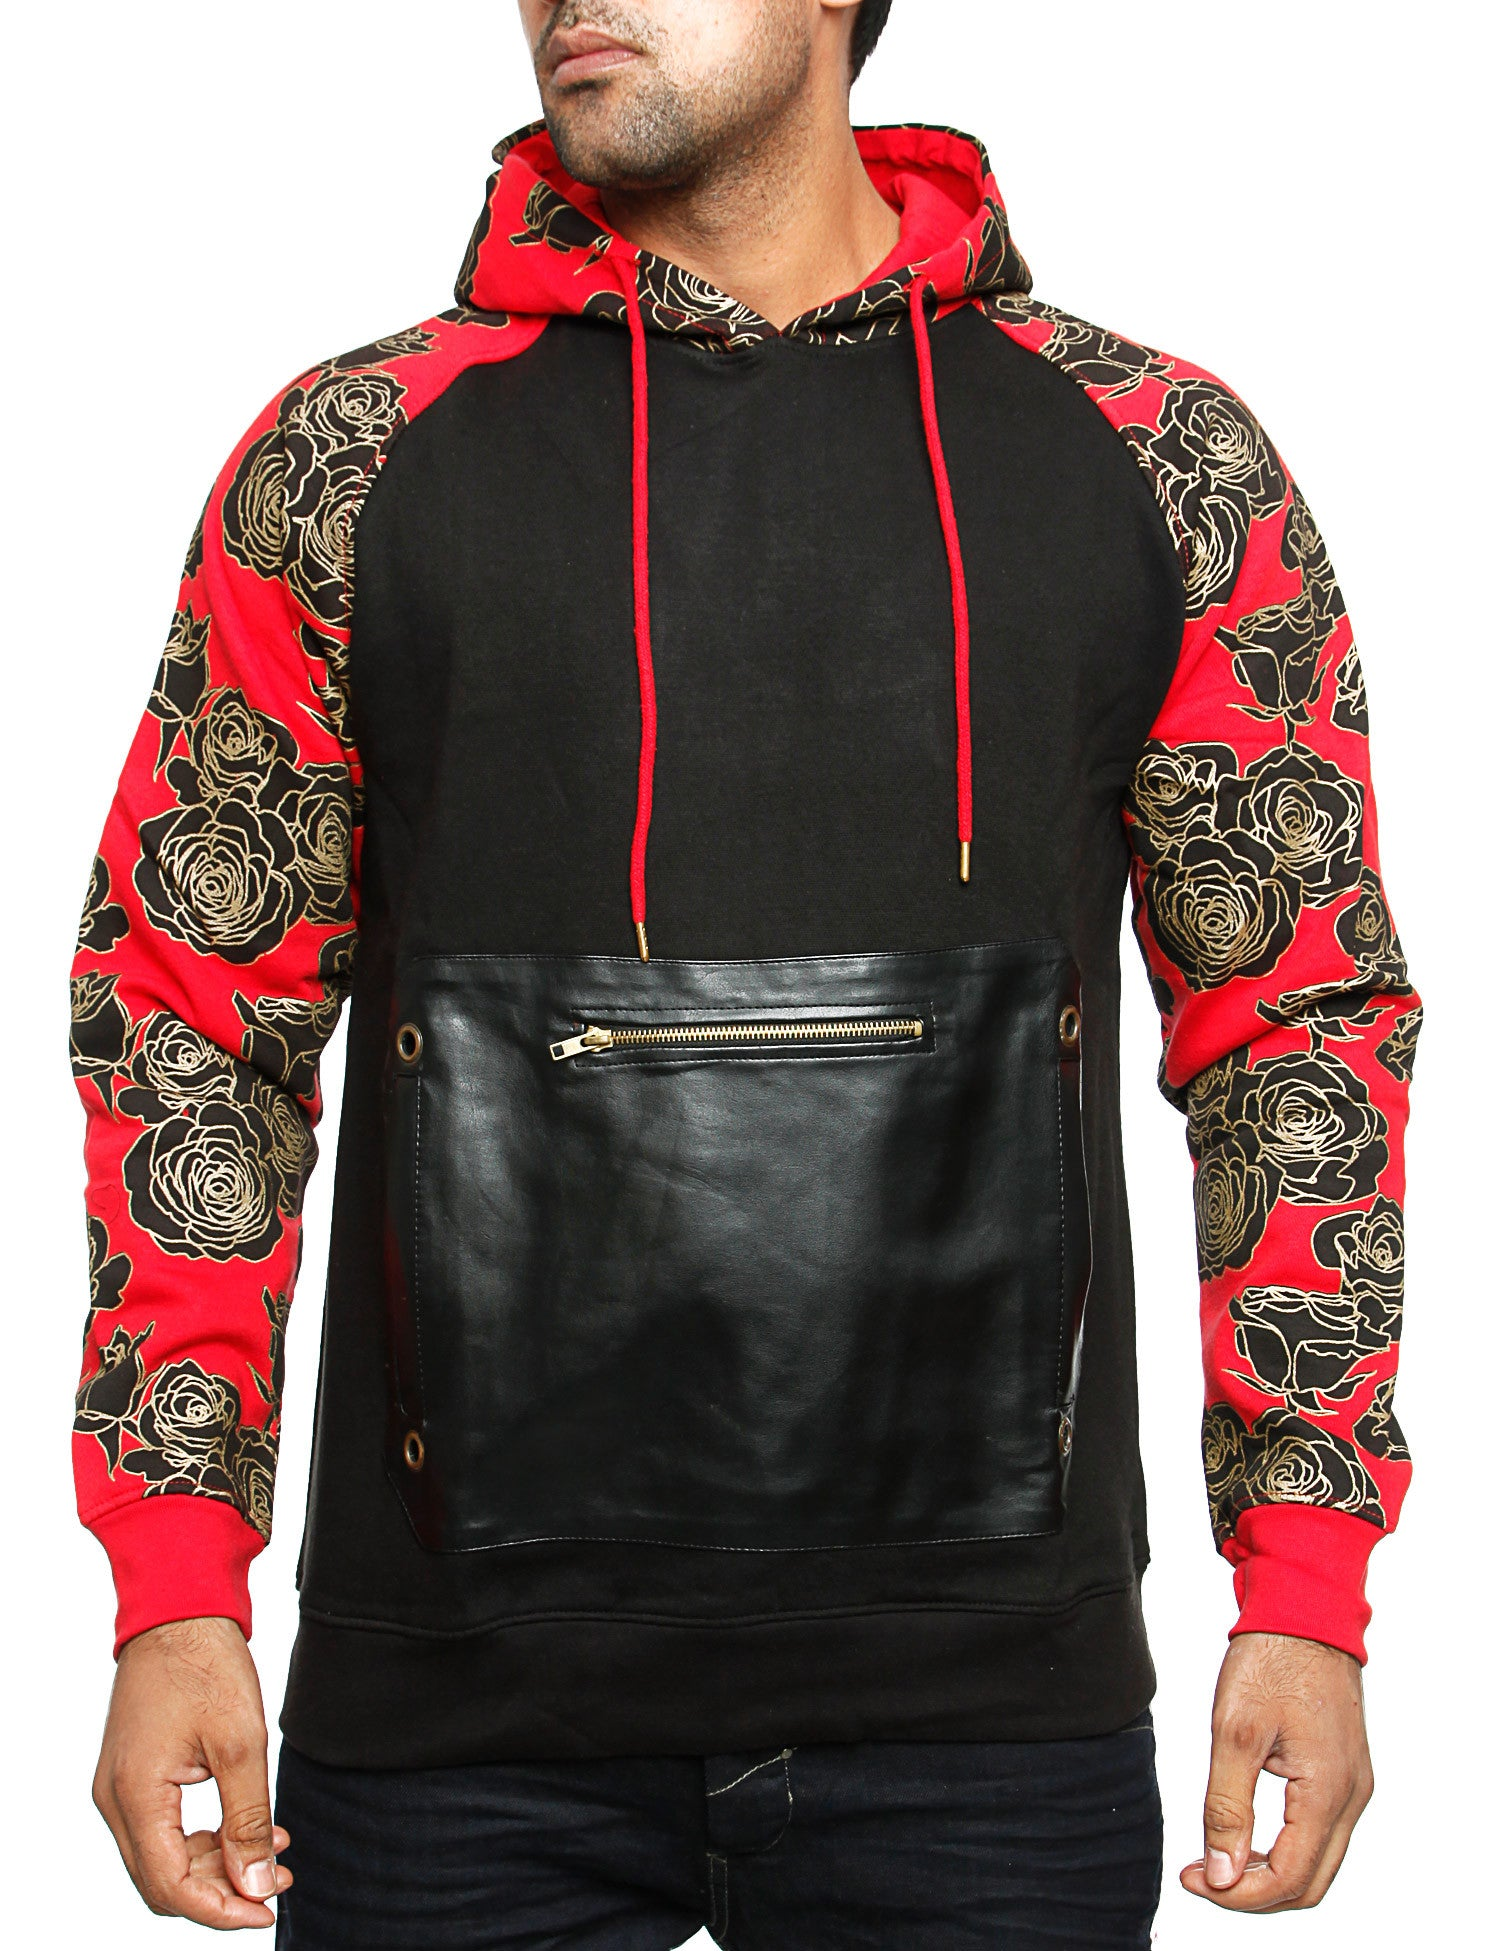 Imperious Goldan Raglan Fleece Hoody HS25 Red